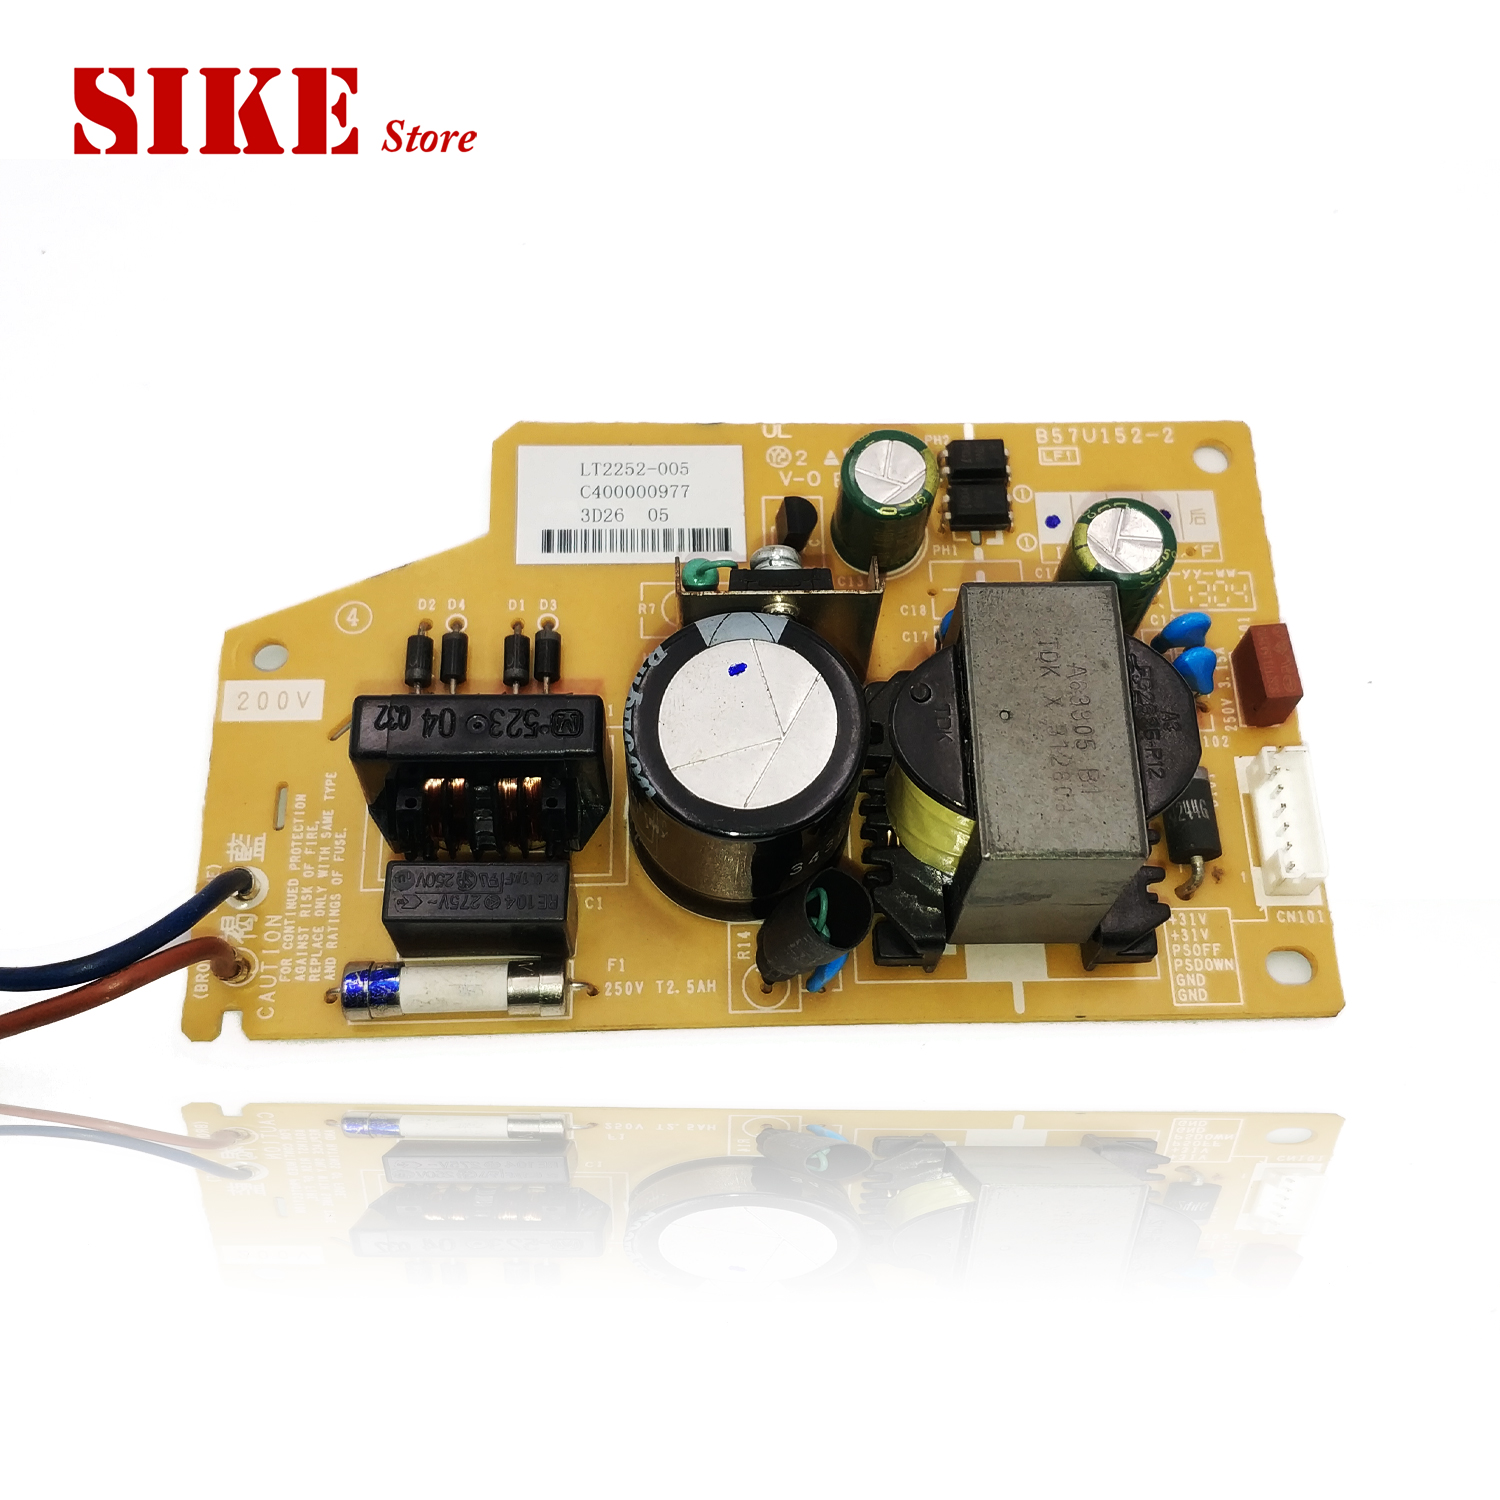 B57U152-2 SMPS For Brother  MFC J2510 J3720 J3520 J2320 J2310 J3520DW Voltage Power Supply BoardB57U152-2 SMPS For Brother  MFC J2510 J3720 J3520 J2320 J2310 J3520DW Voltage Power Supply Board